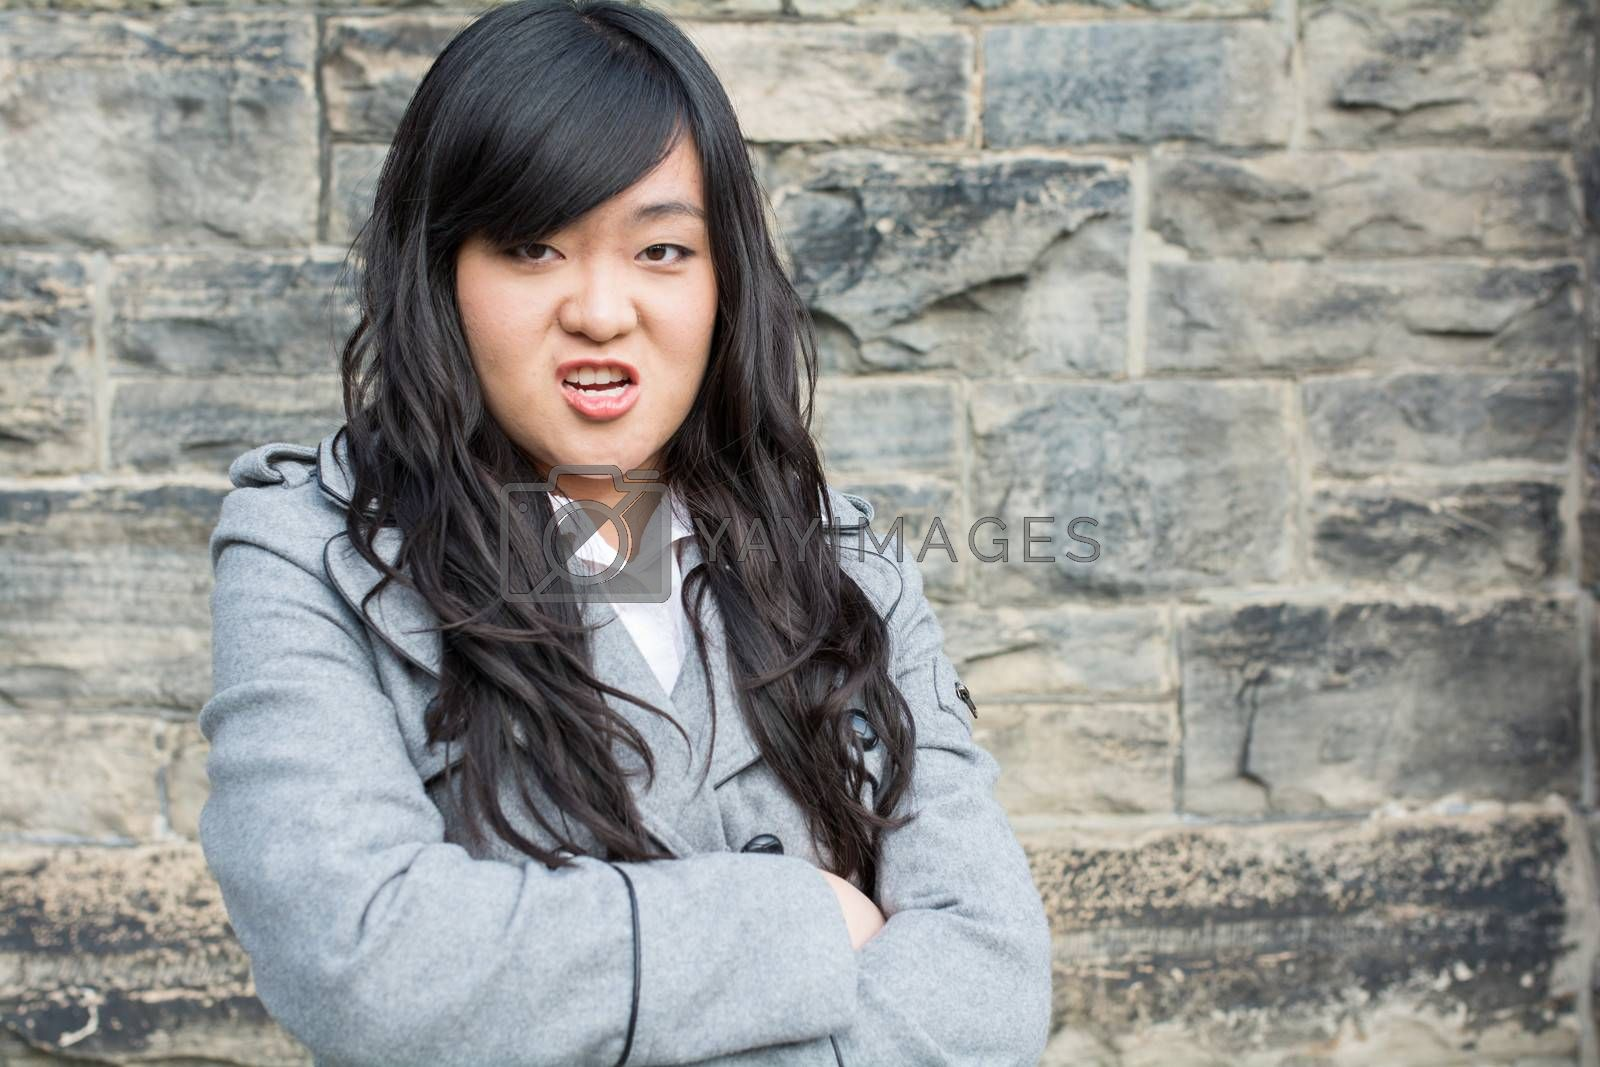 Portrait of young woman in front of a stone wall looking angry with arms crossed